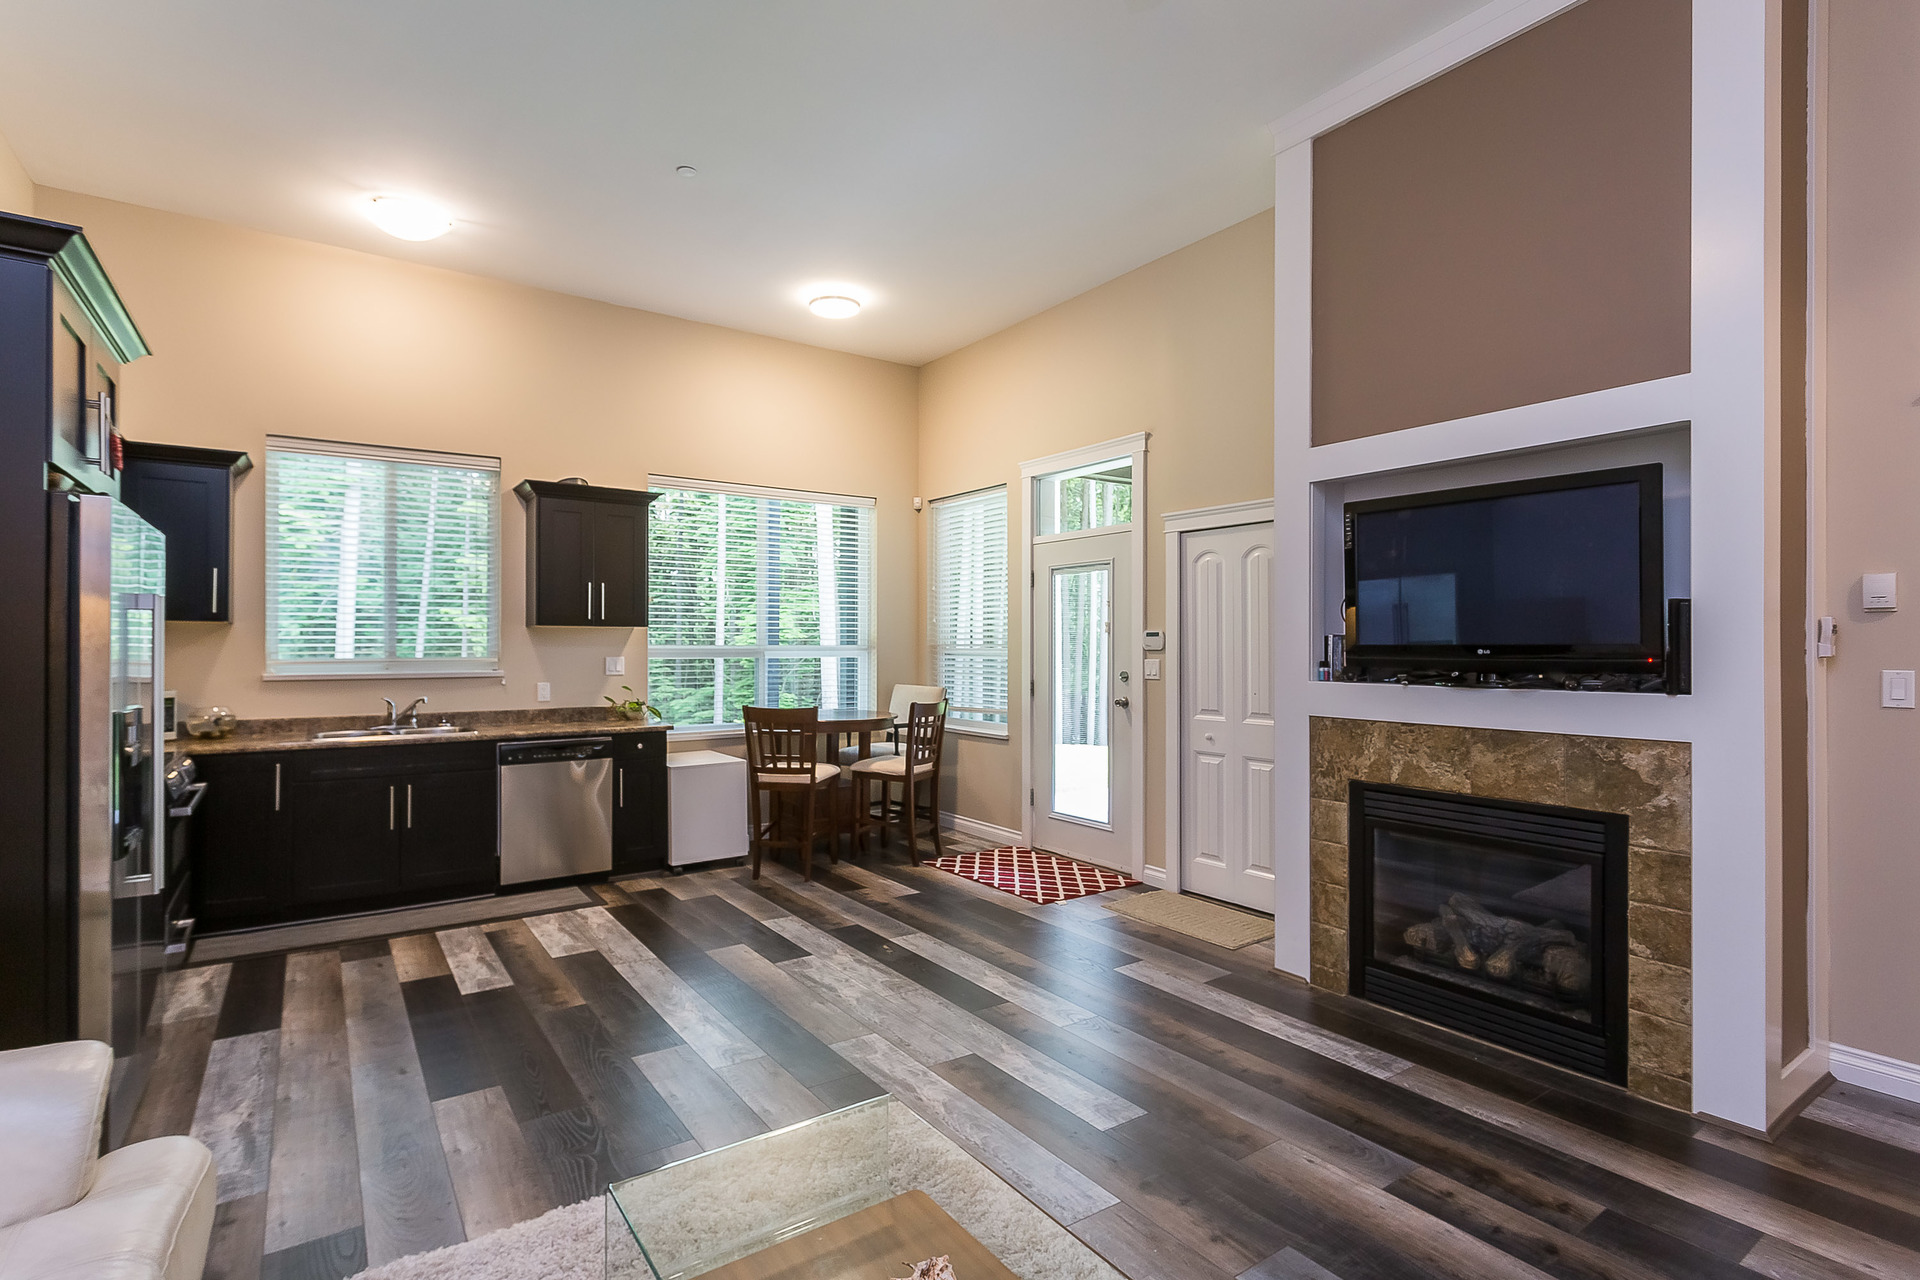 Suite 2-2 BR at 1408 Crystal Creek Drive, Anmore, Port Moody